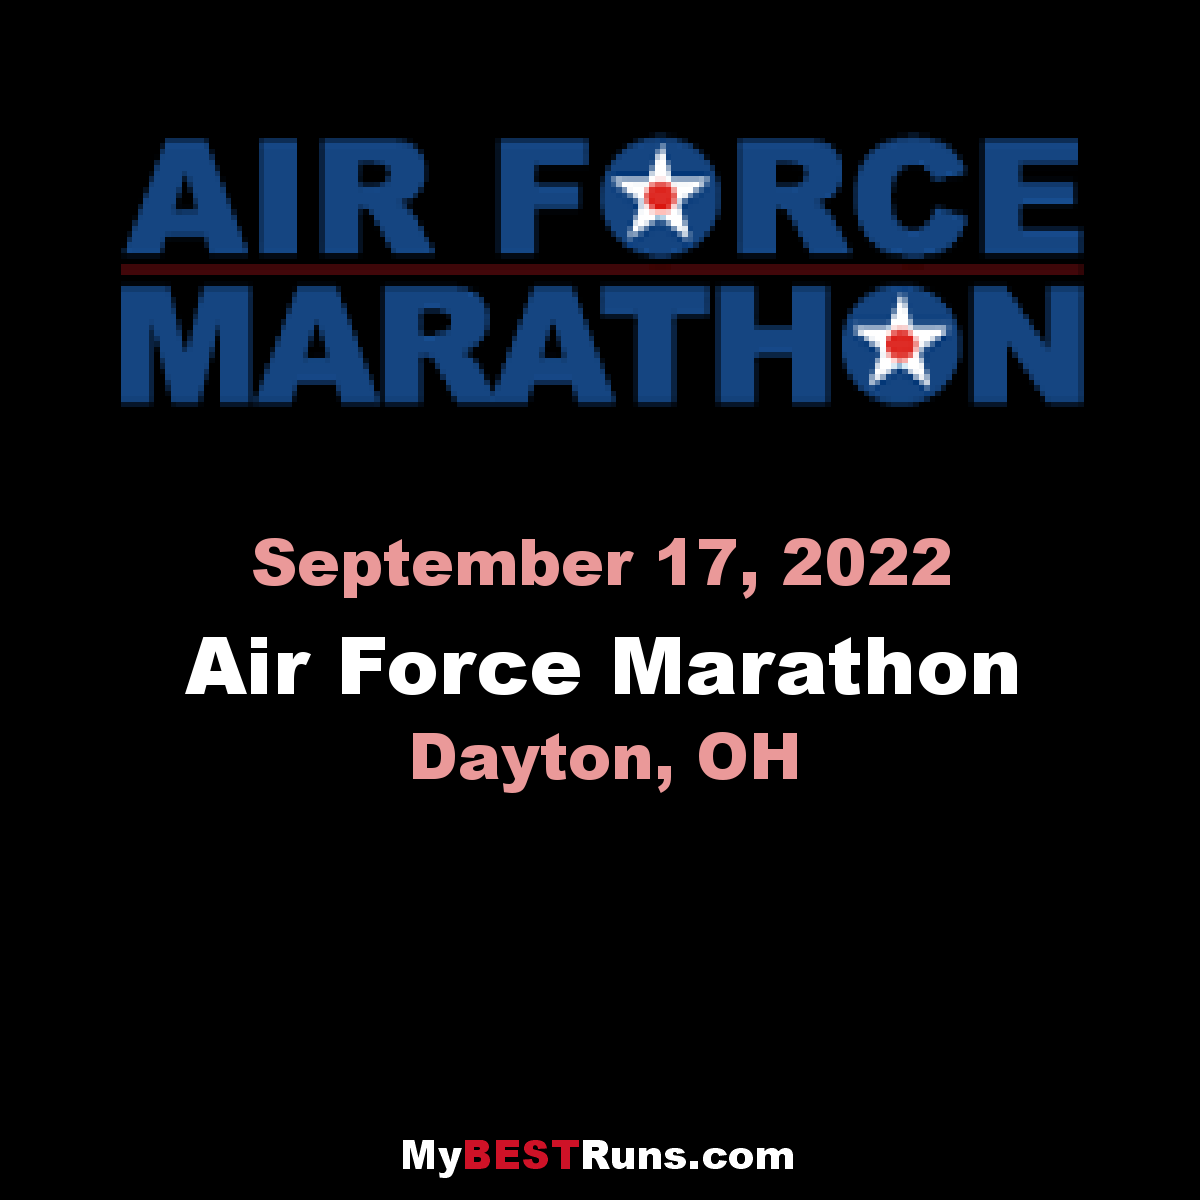 Air Force Marathon